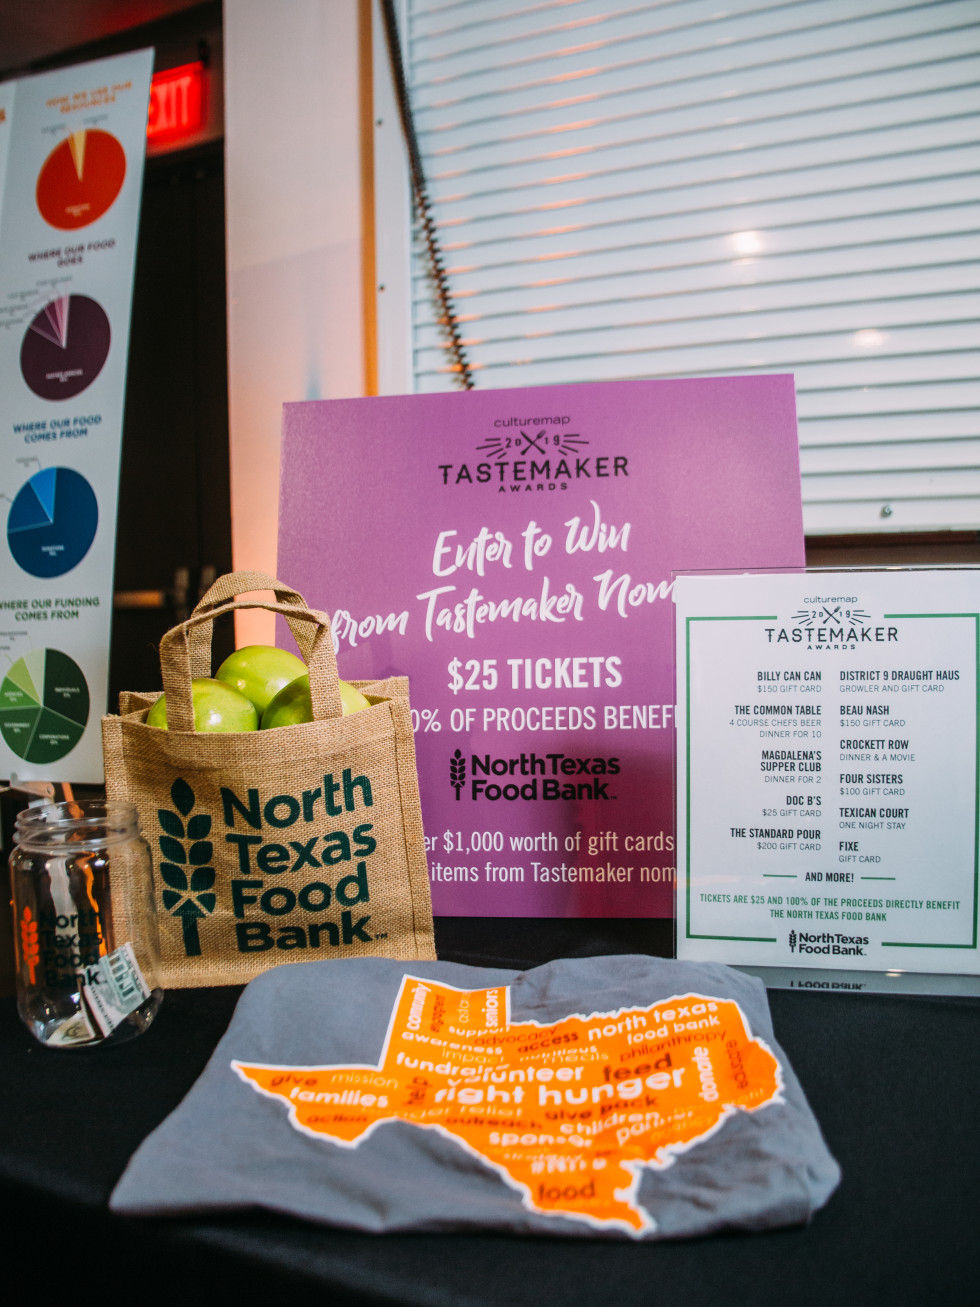 North Texas Food Bank, Tastemakers Dallas